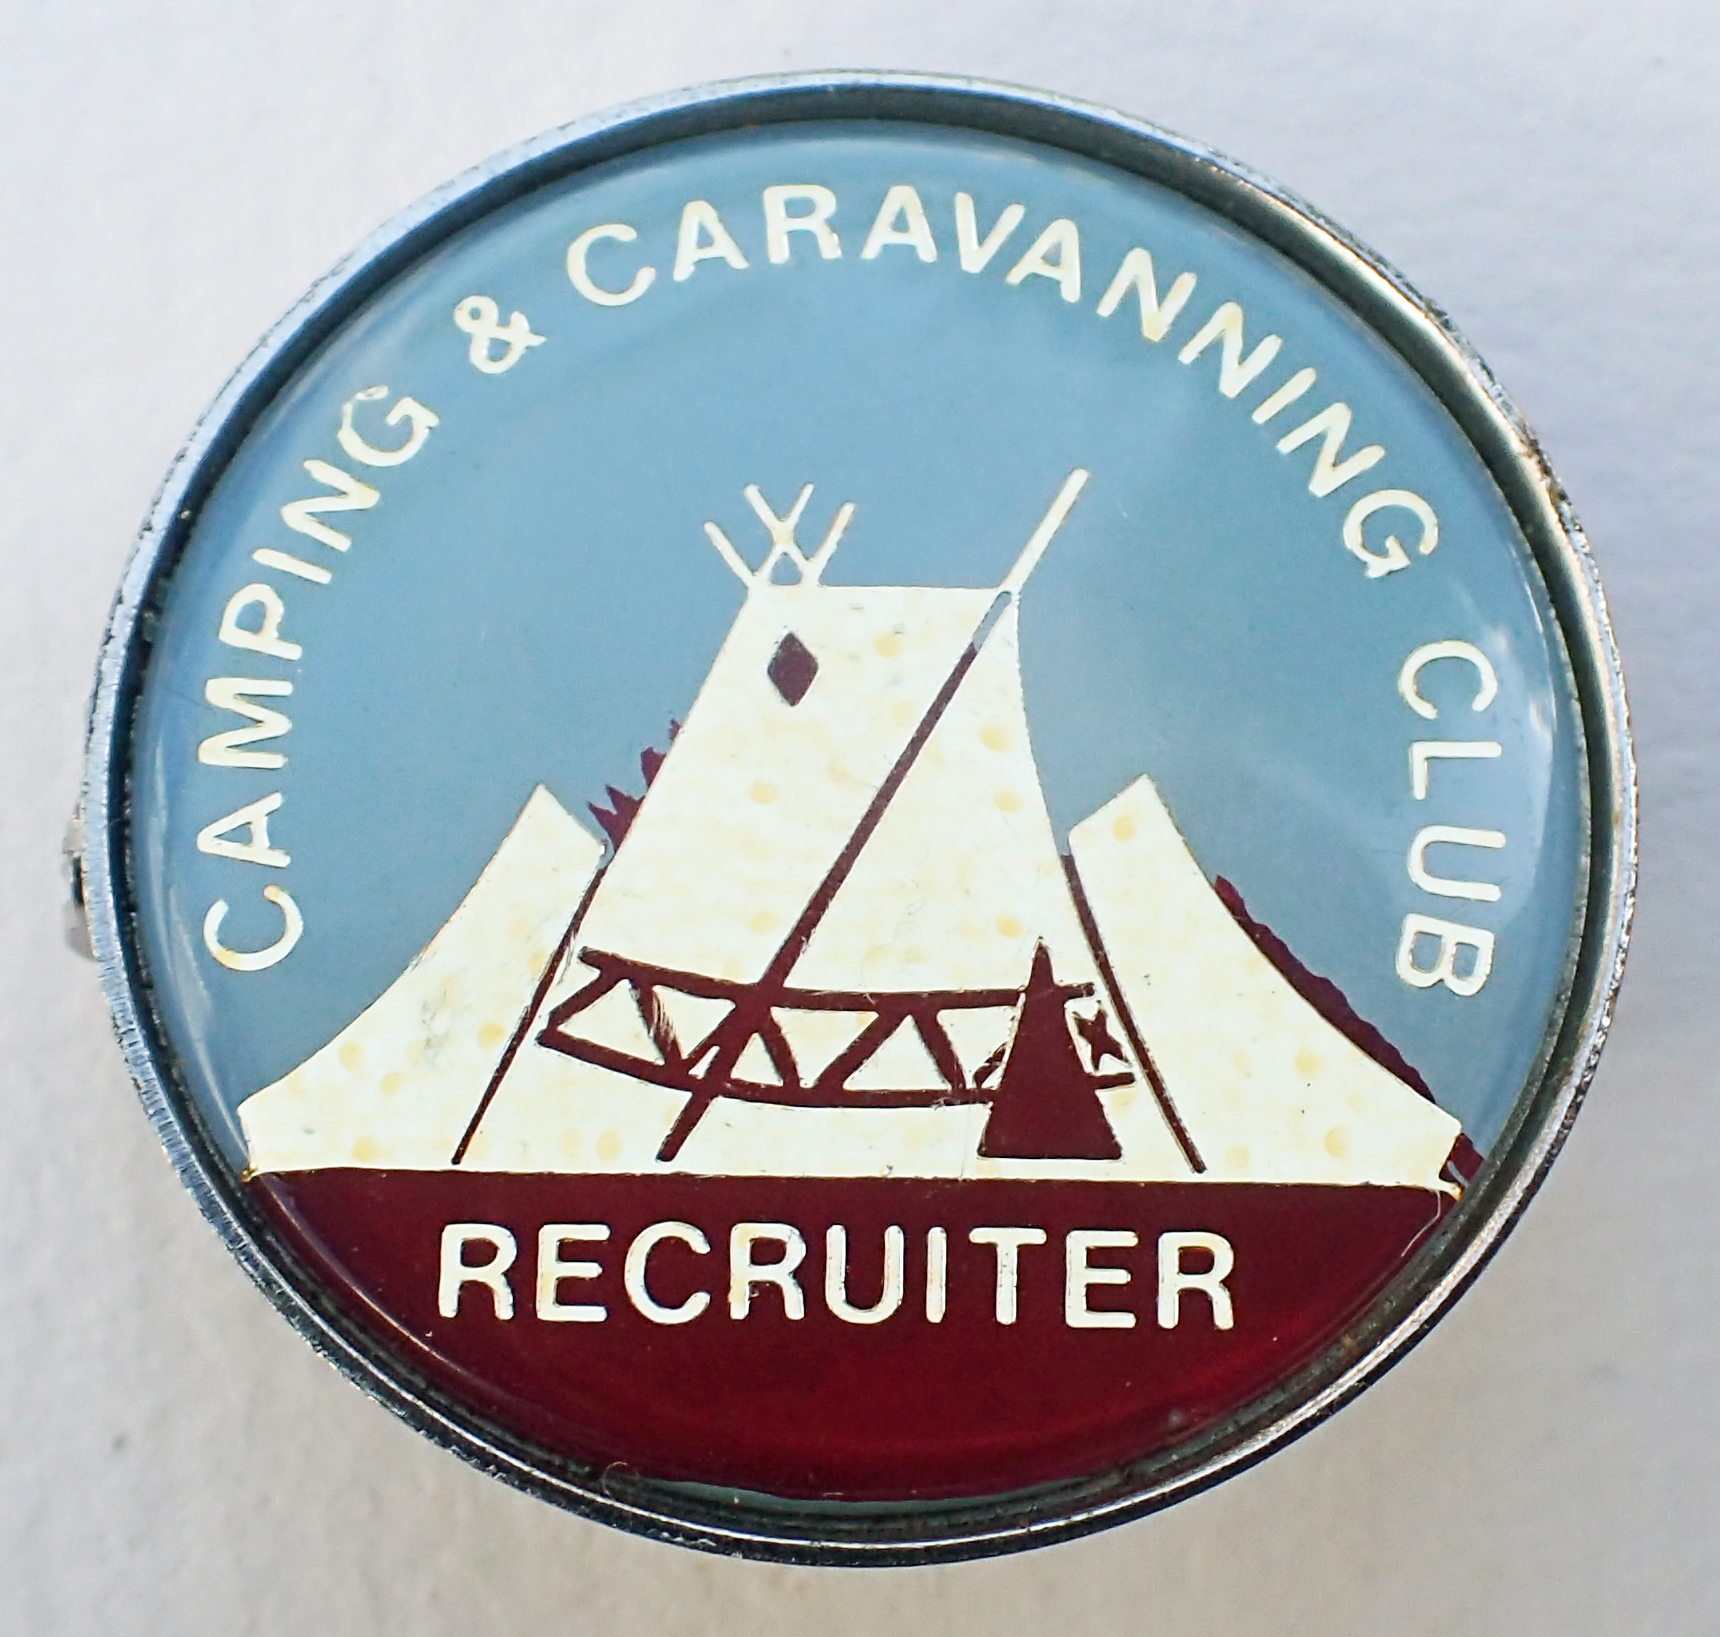 Camping Club Recruiter. Pre 1983.  Brooch pin with safety wheel. 27mm. No makers name